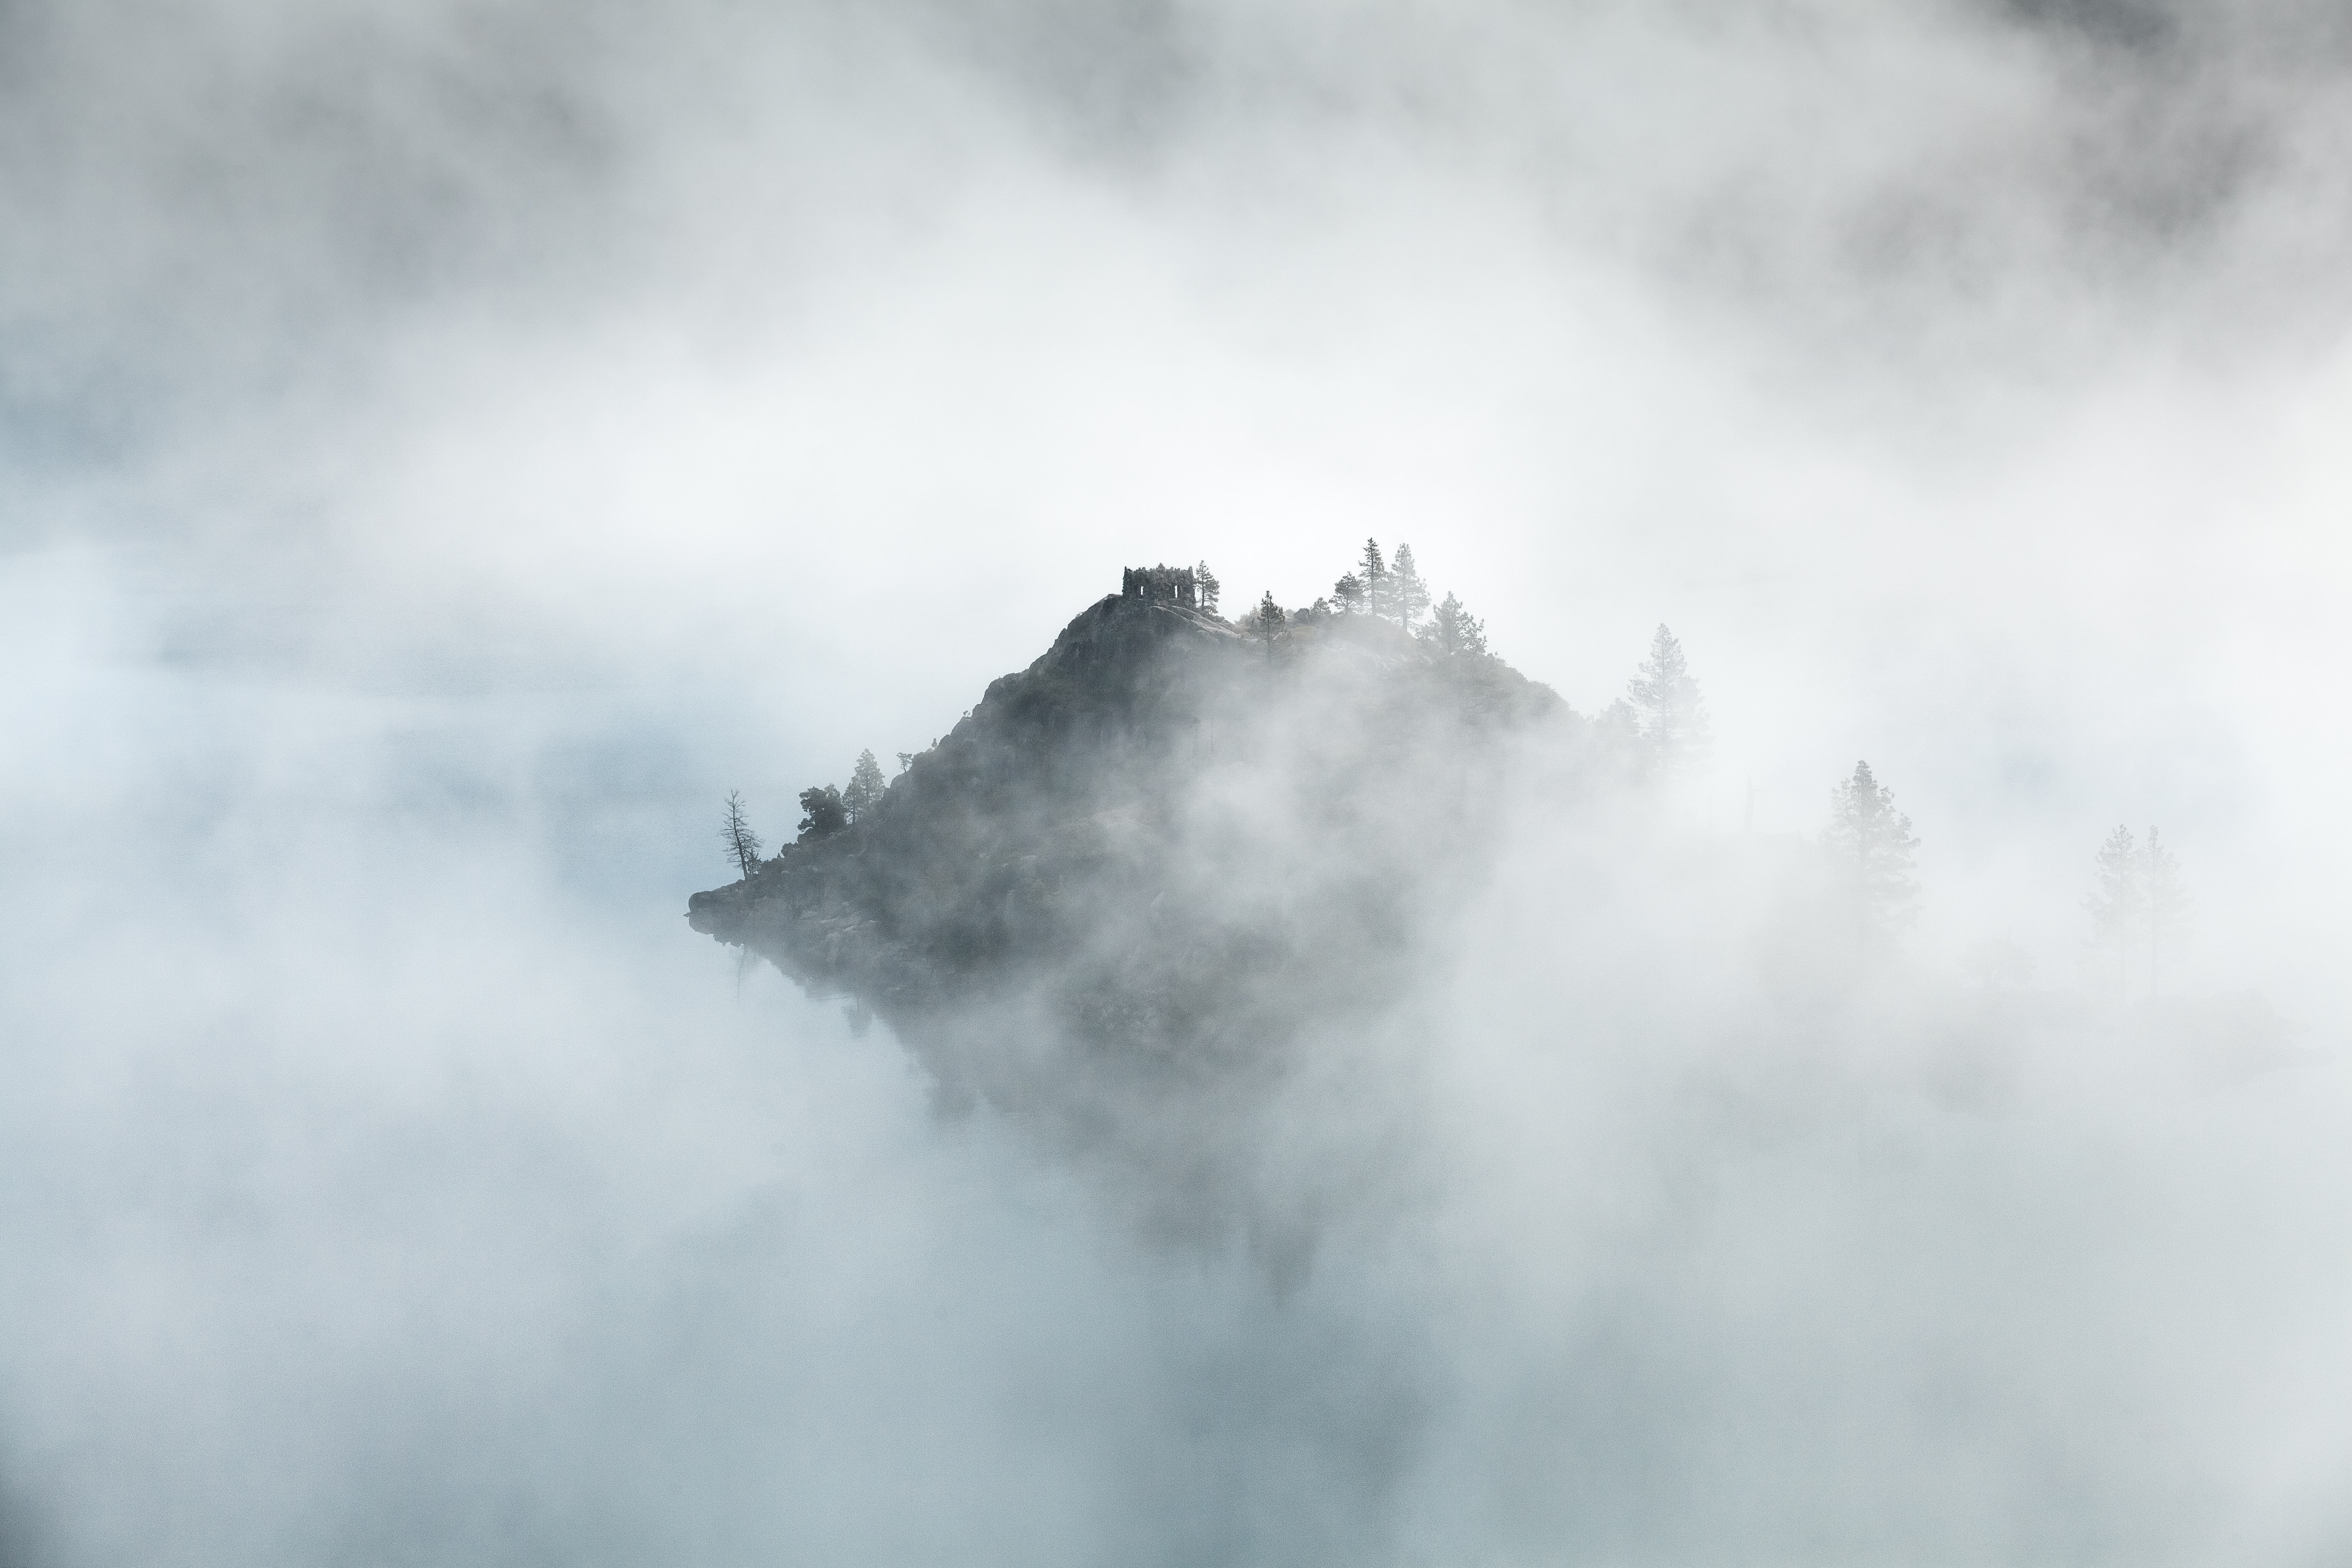 Mountain peak in Emerald Bay peeks through morning mist